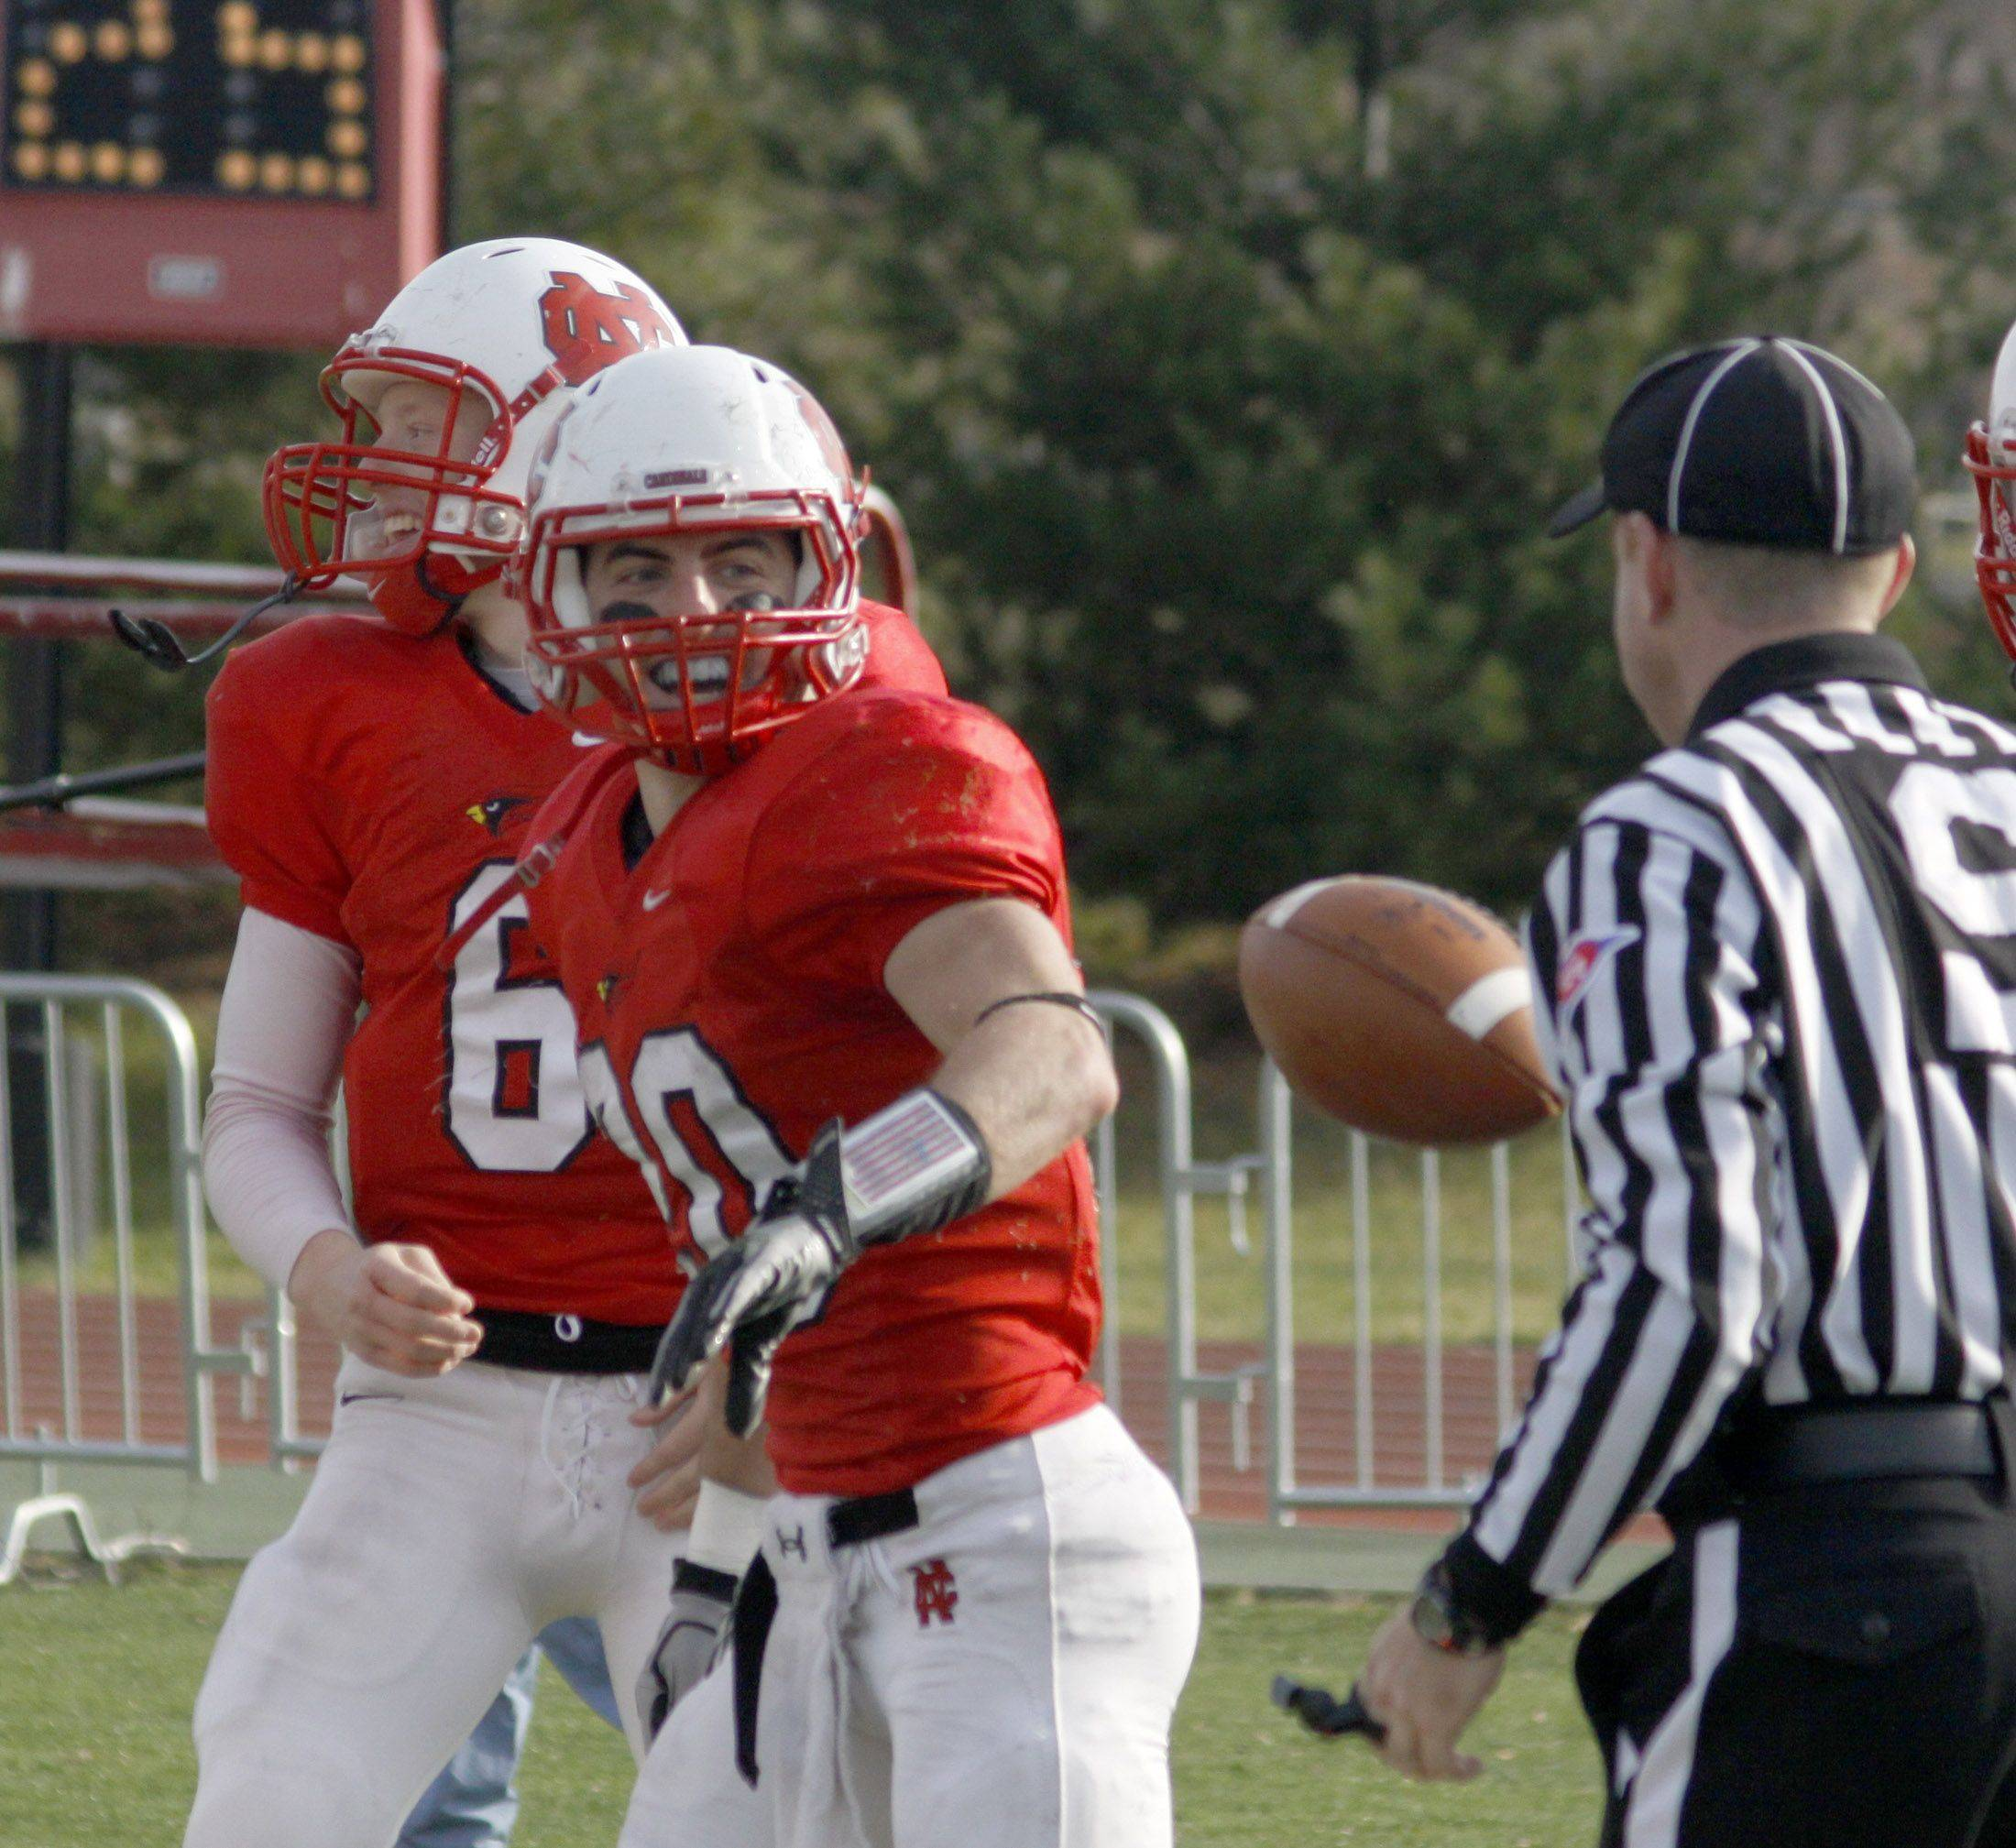 North Central College player, Joe Antonacci number 20, casually tosses the ball after bringing in a touchdown at Saturdays St. Norbert at North Central College playoff football game. North Central College went on to win 57 to 7.